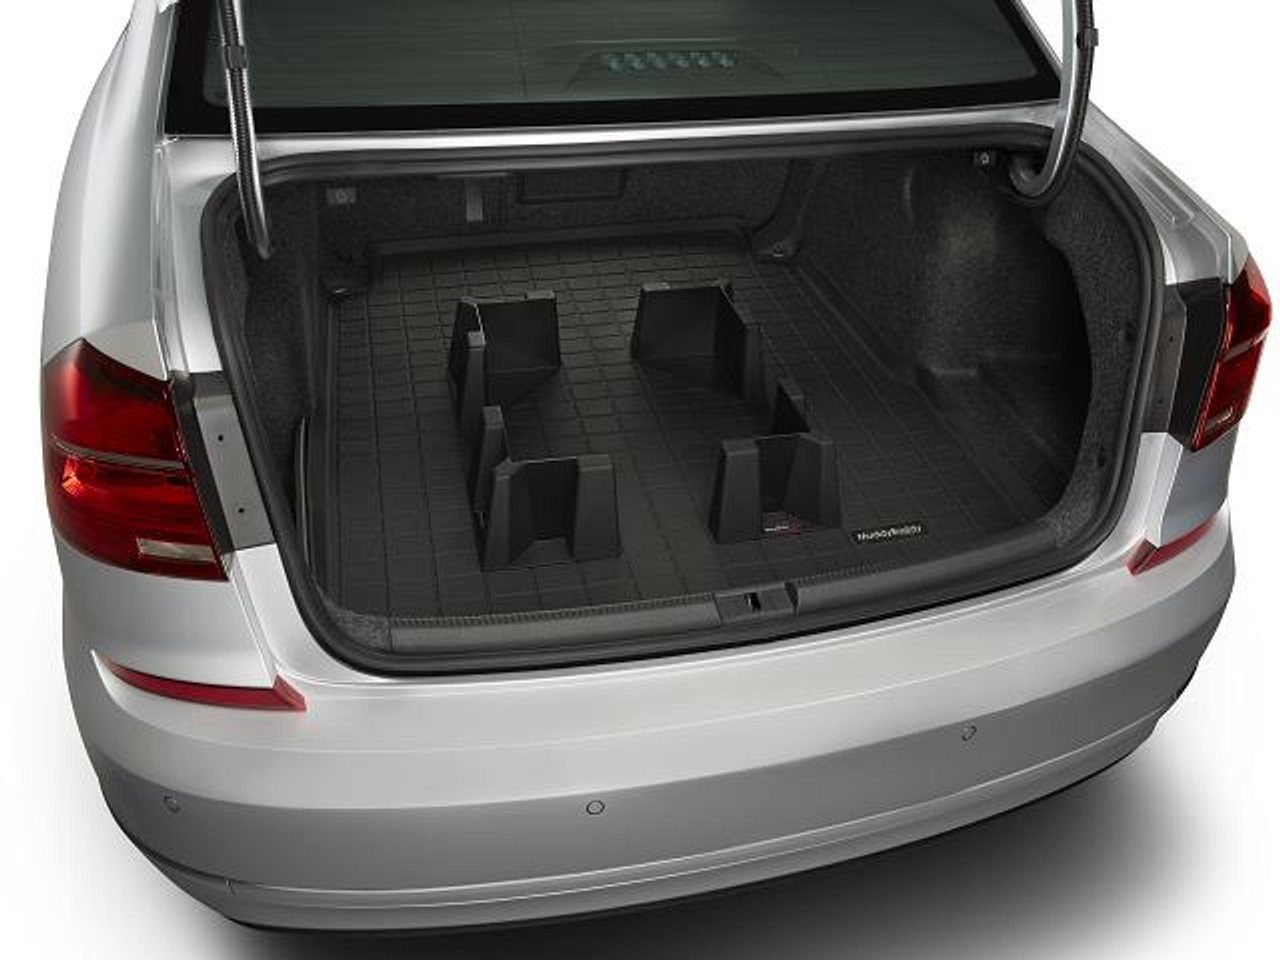 2018-2020 VW Tiguan Rubber Cargo Tray - Containment System Only